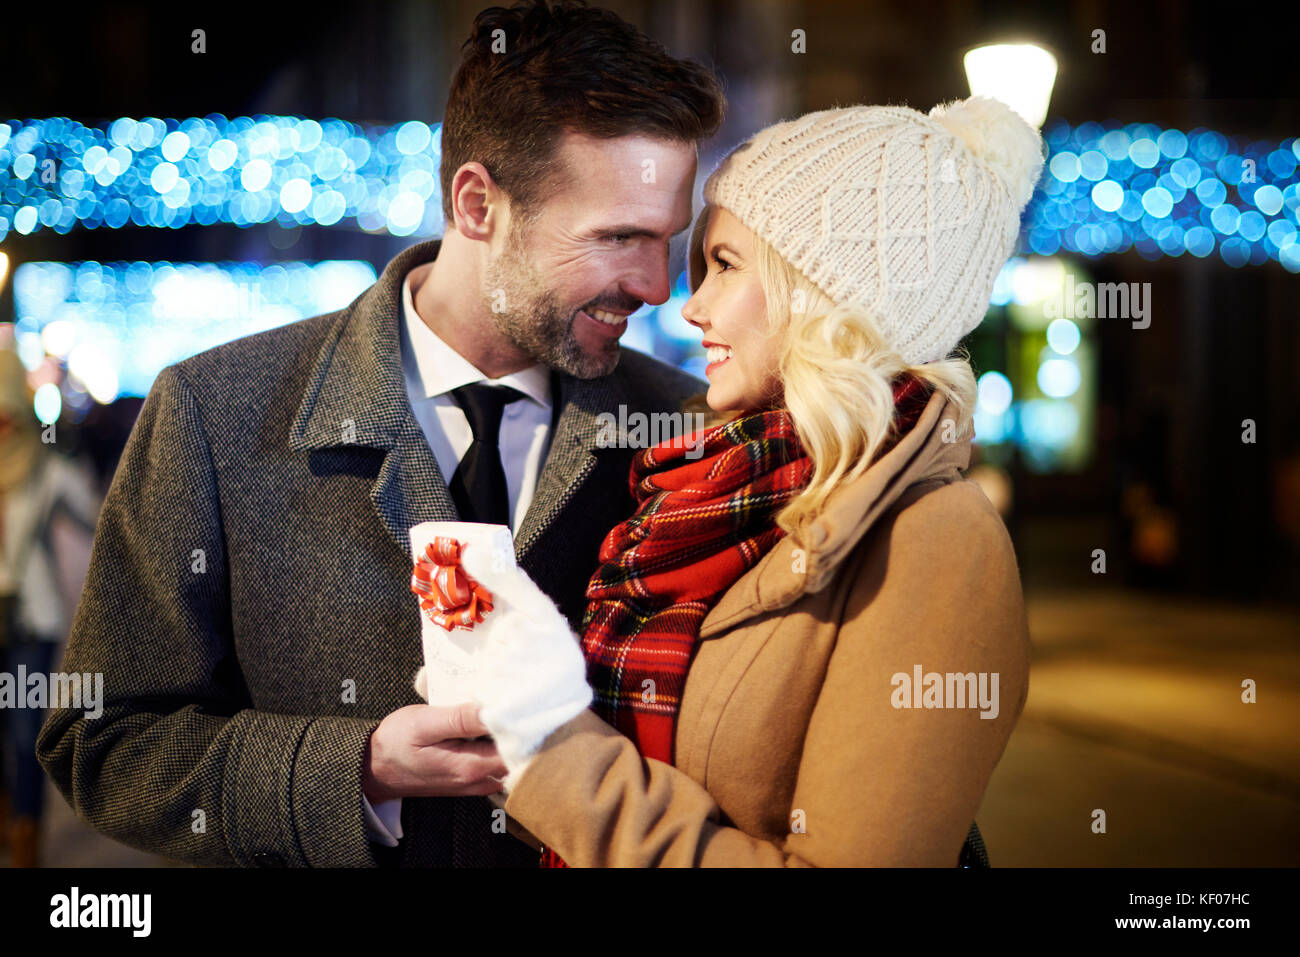 Picture of man bestowed woman by small present Stock Photo